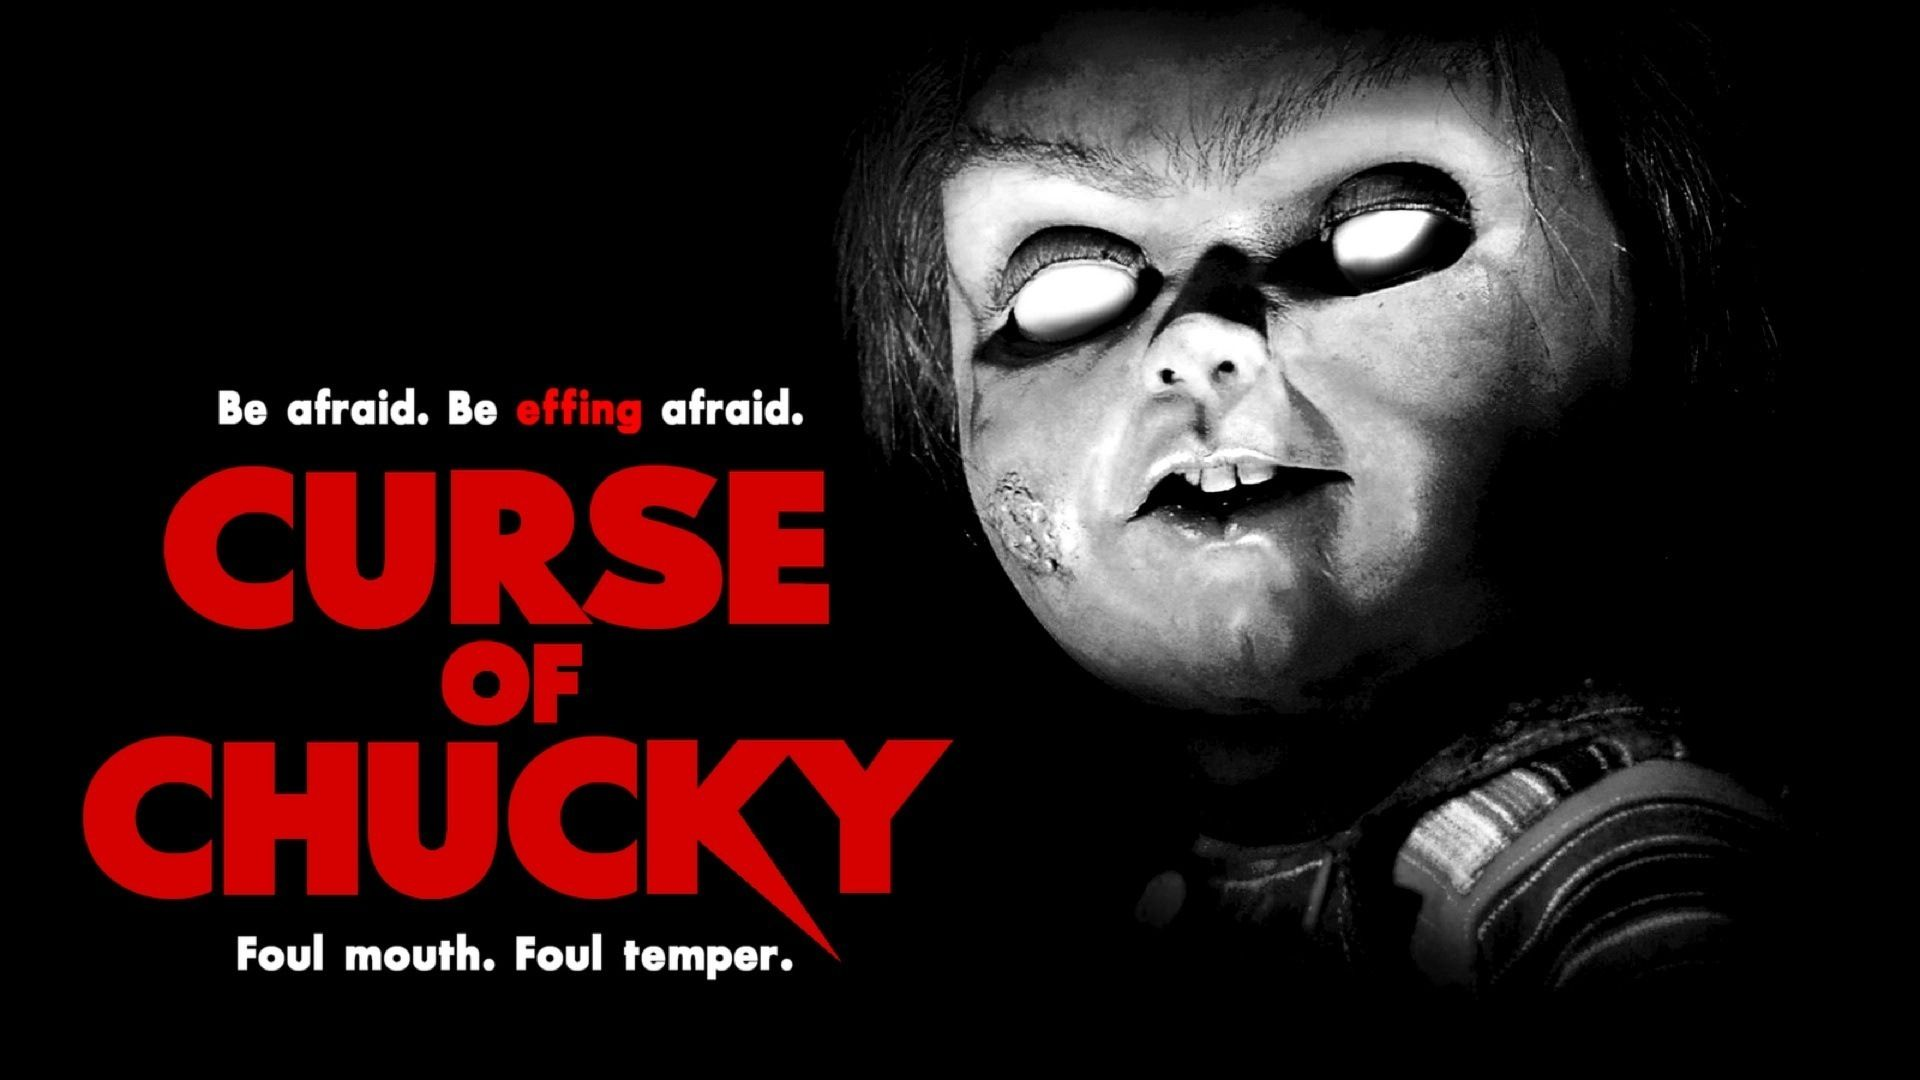 Download The Latest Curse of Chucky 2013 Wallpaper